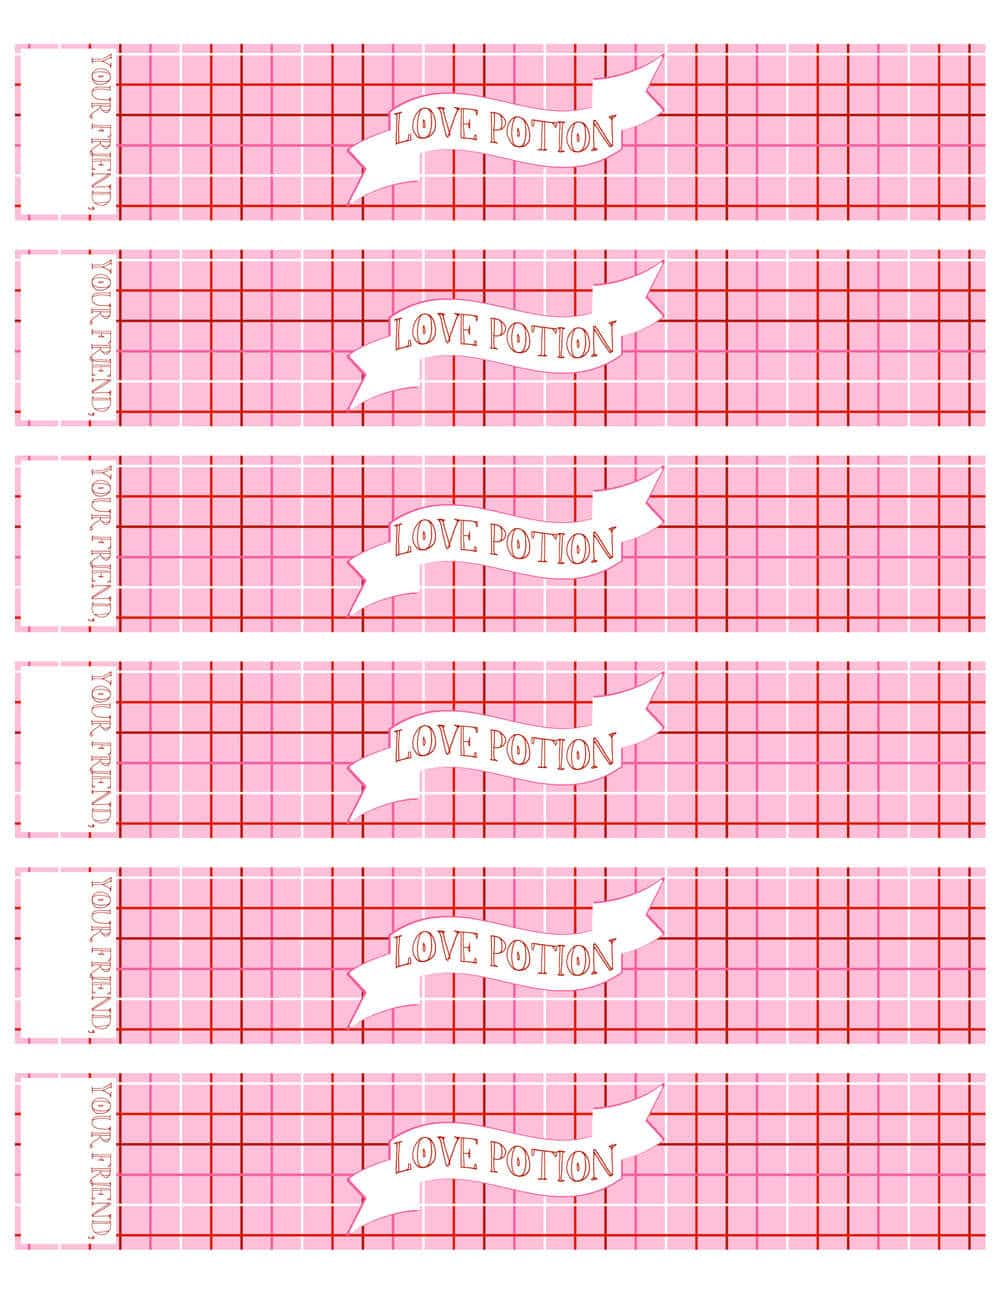 Free printable Valentine water bottle labels - I Heart Nap Time